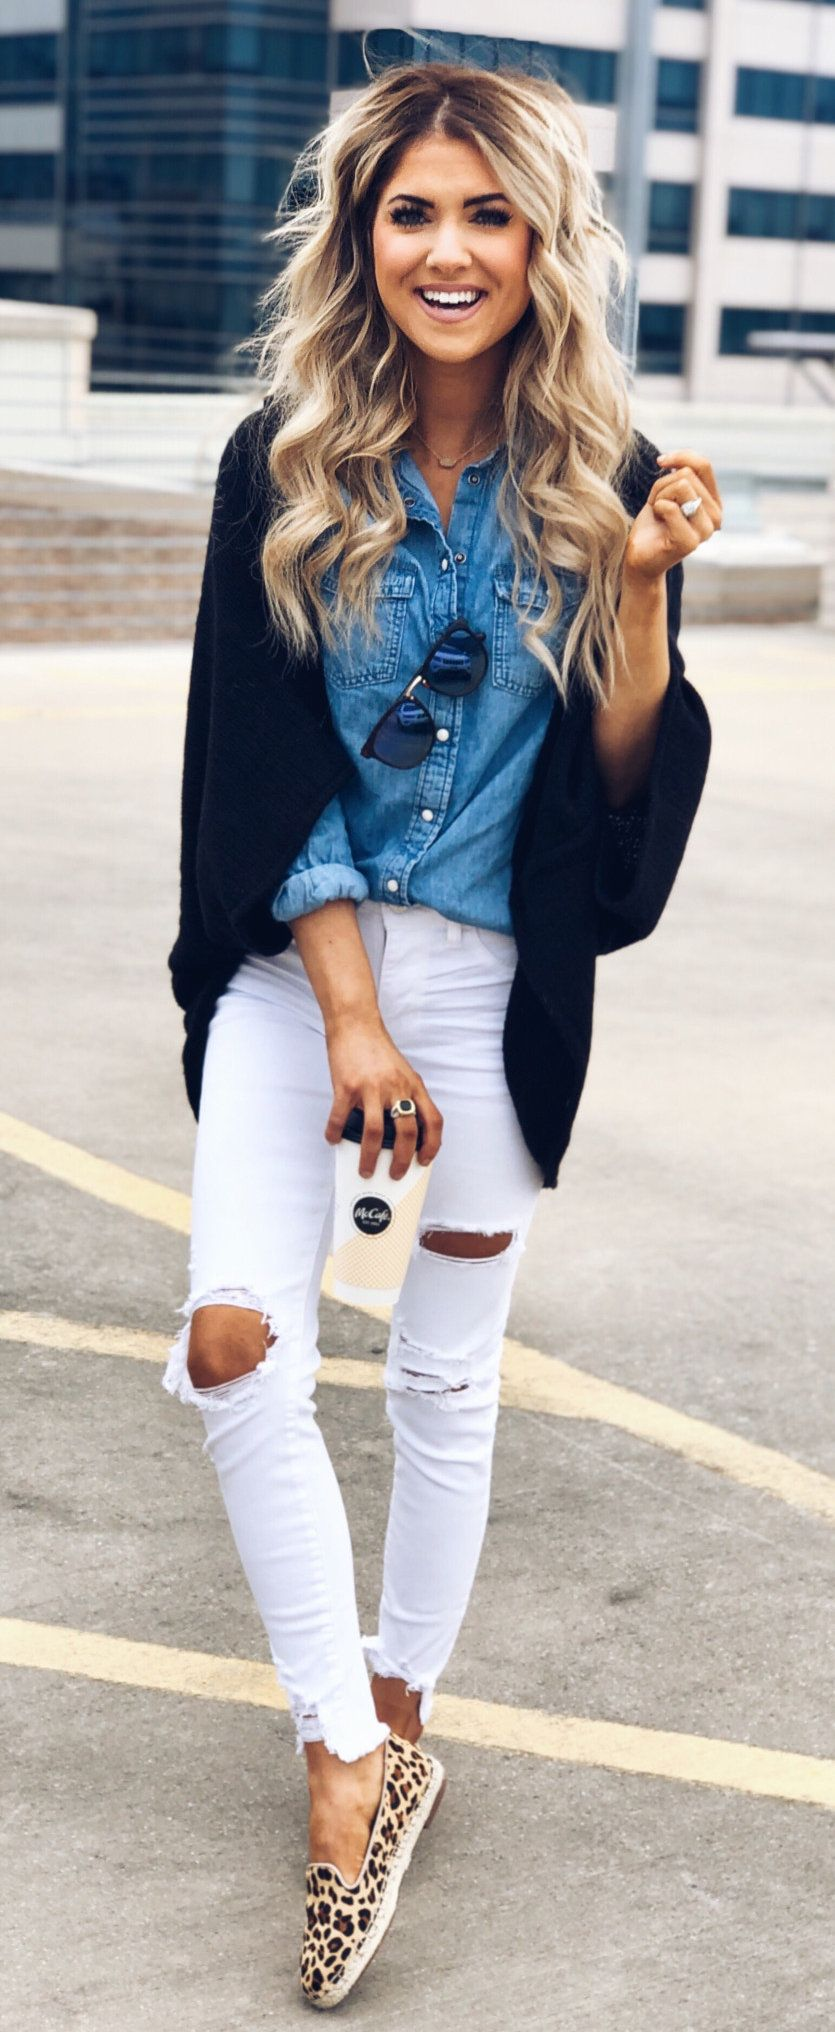 blue denim button-up shirt, black open cardigan, and white distressed jeans #spring #outfits